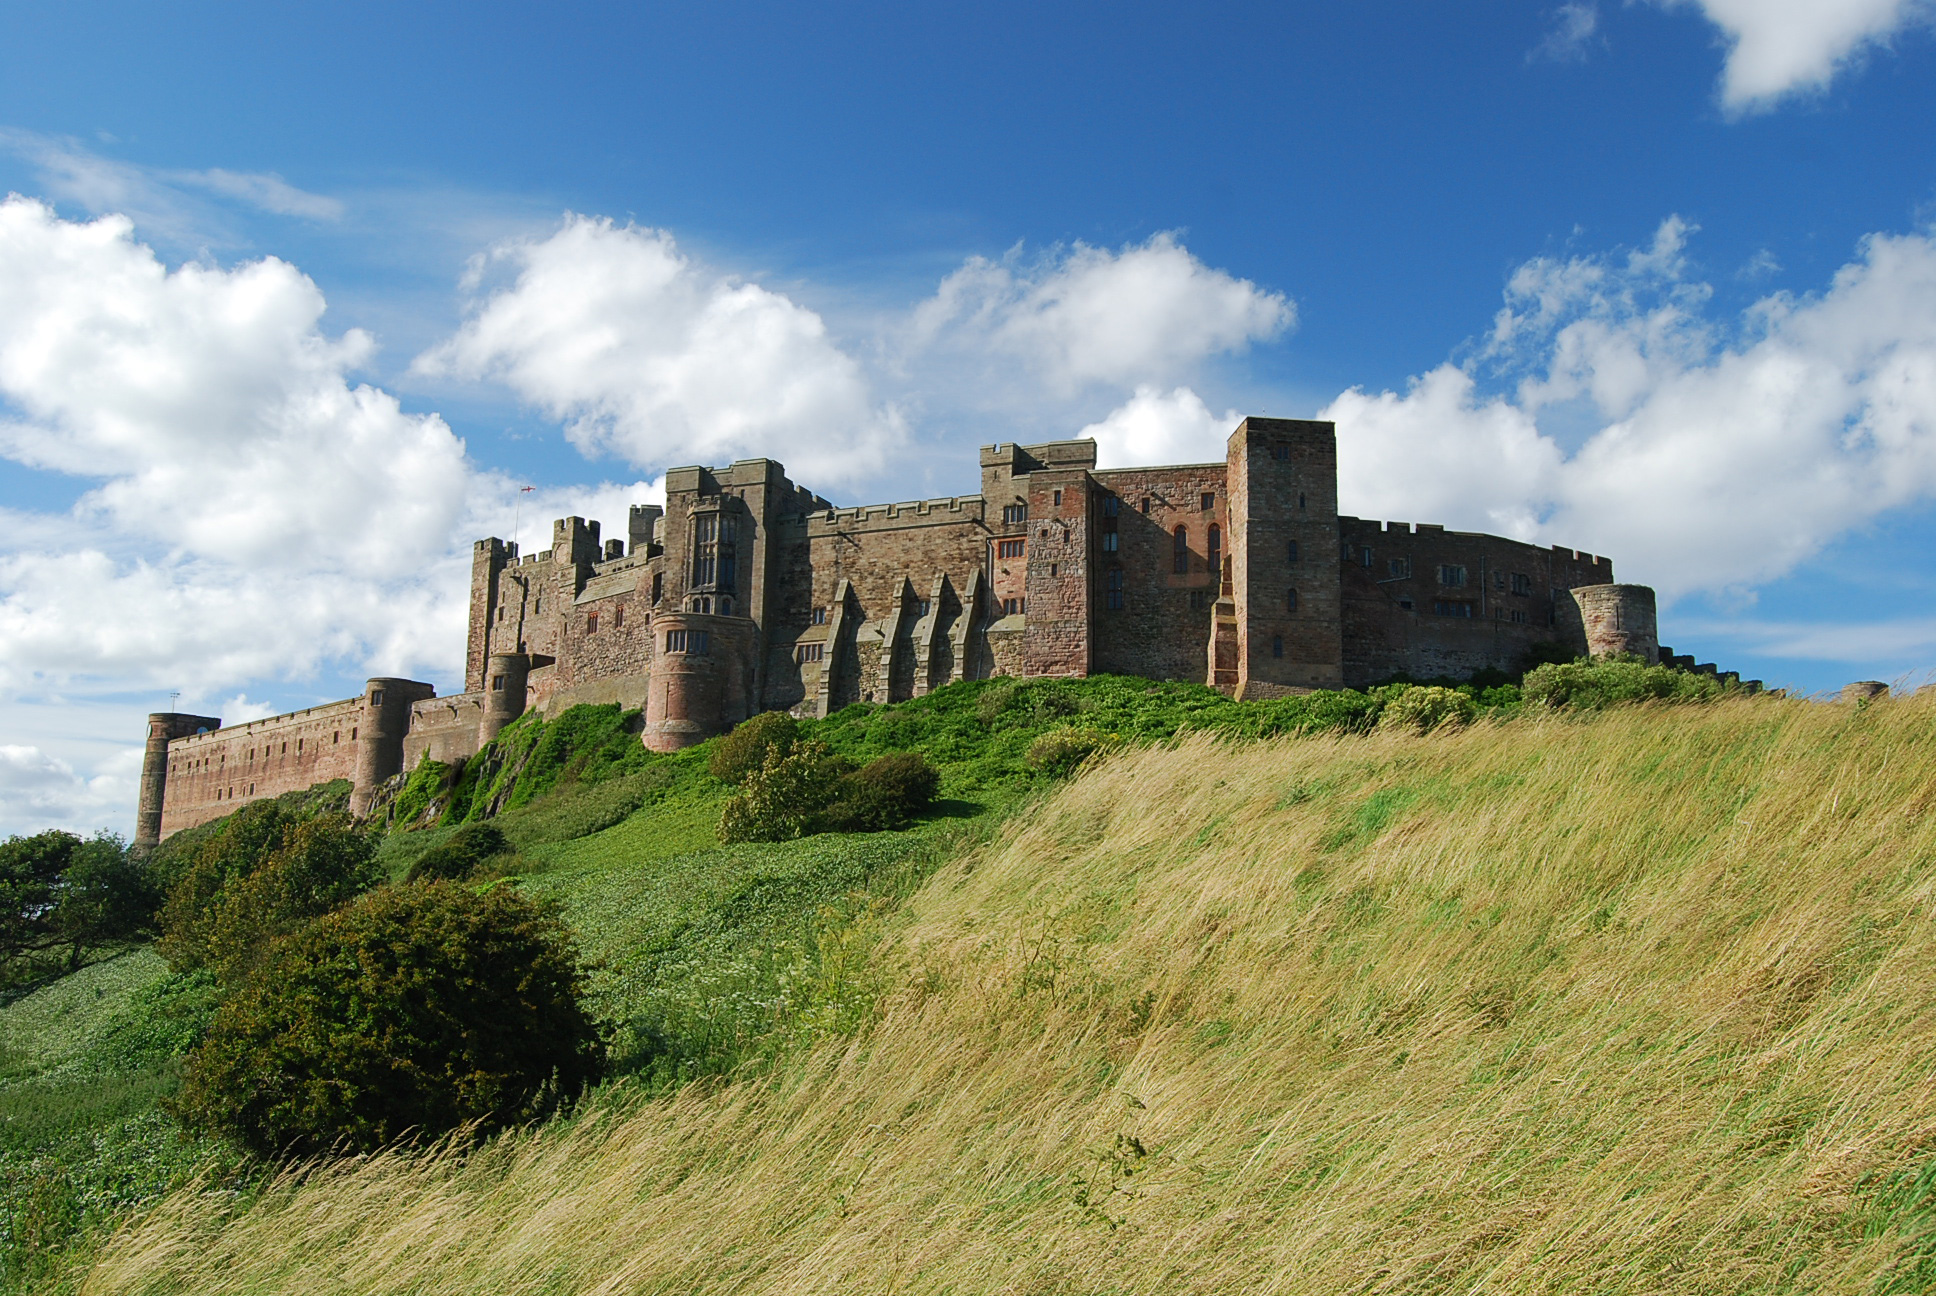 bamburgh castle - photo #12